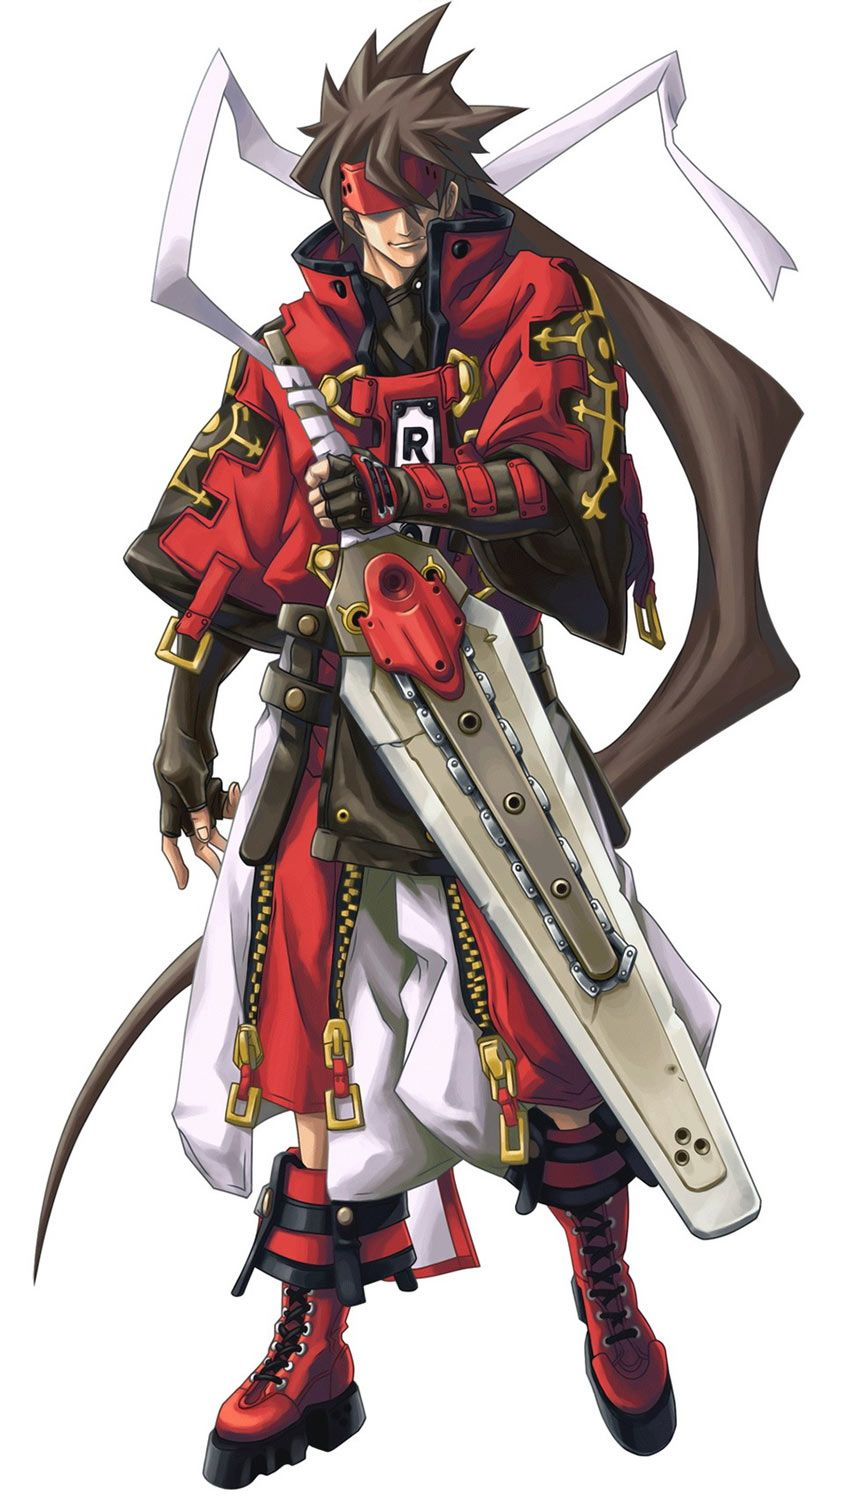 Sol Badguy - Characters & Art - Guilty Gear 10: Overture